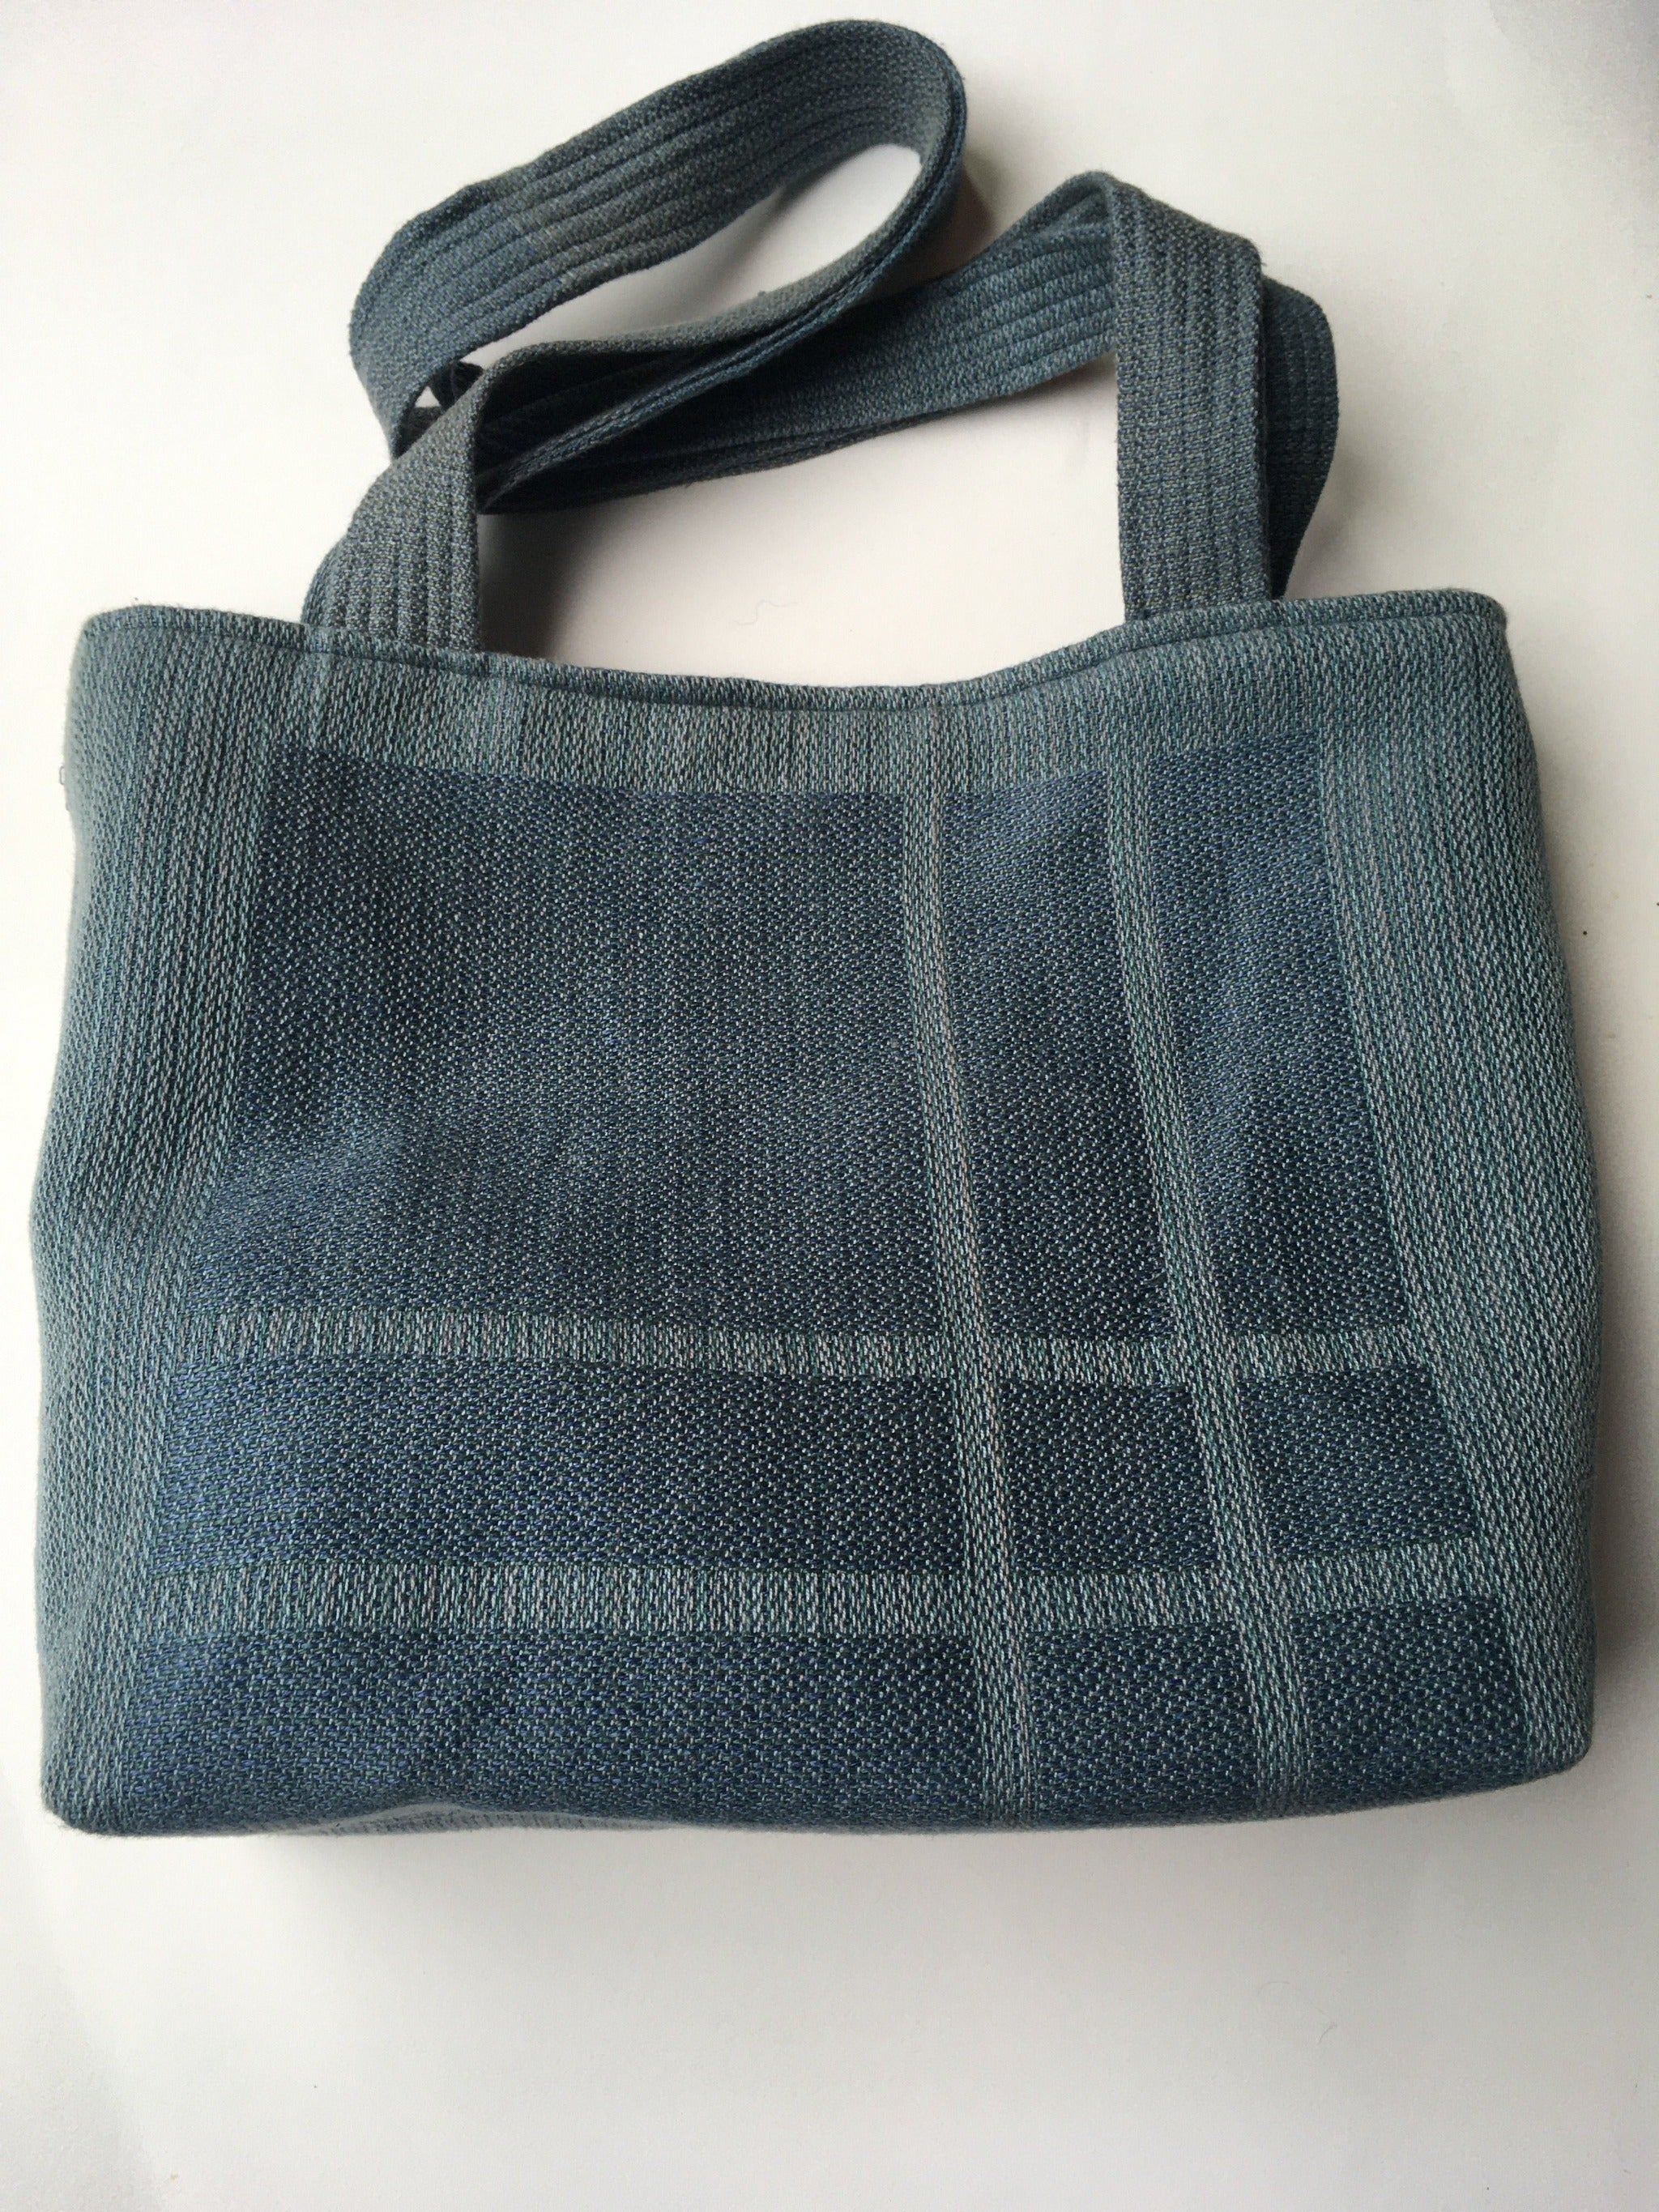 Bag handwoven by Helen Frostell